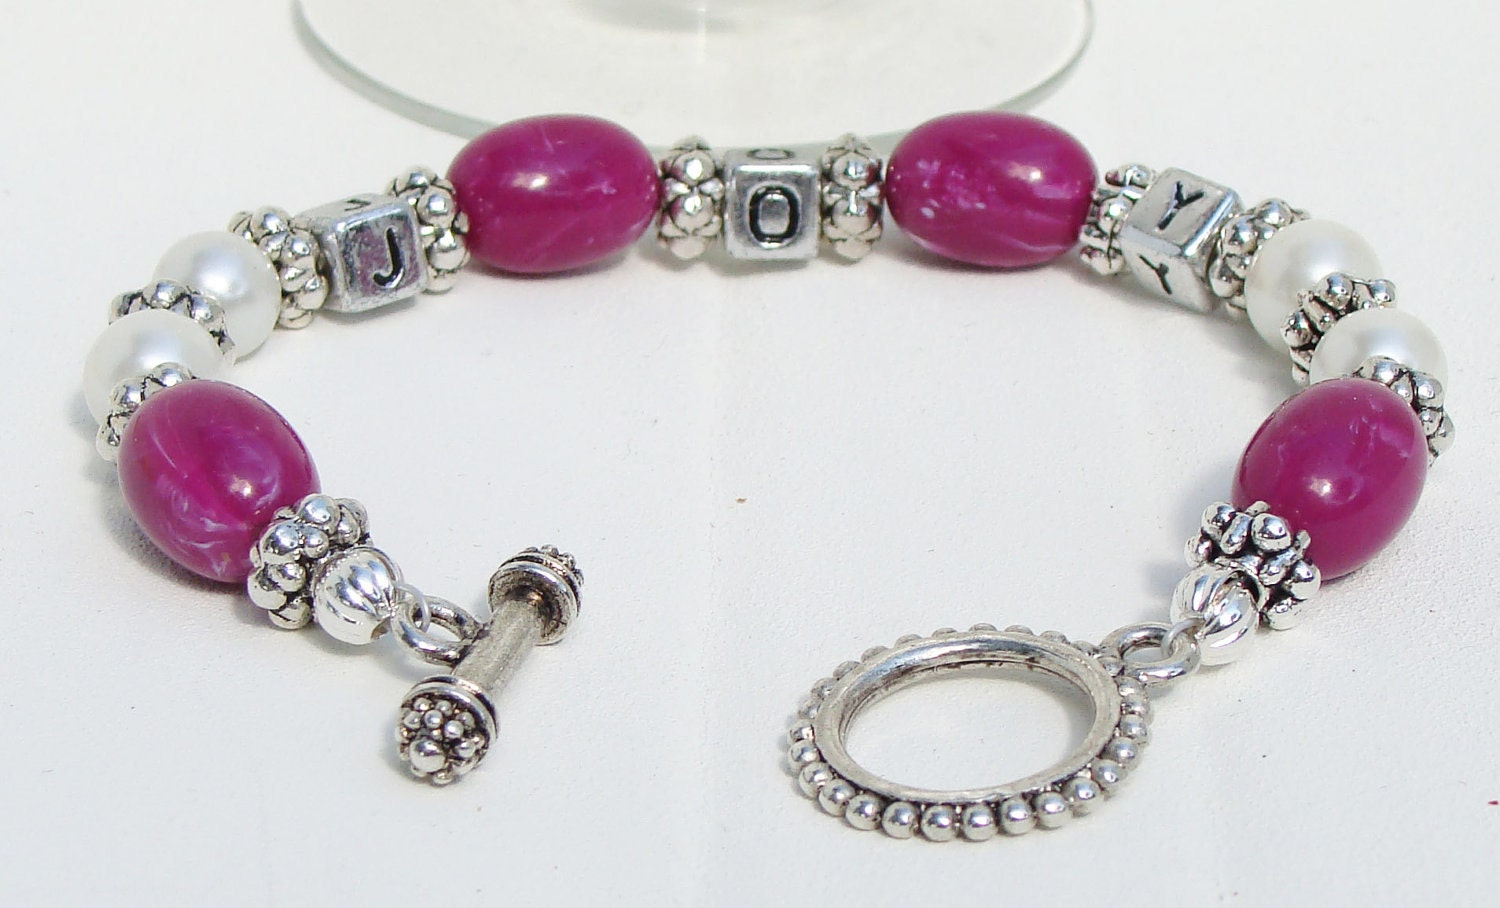 Joyous Christmas Fushia and Pearl Bracelet